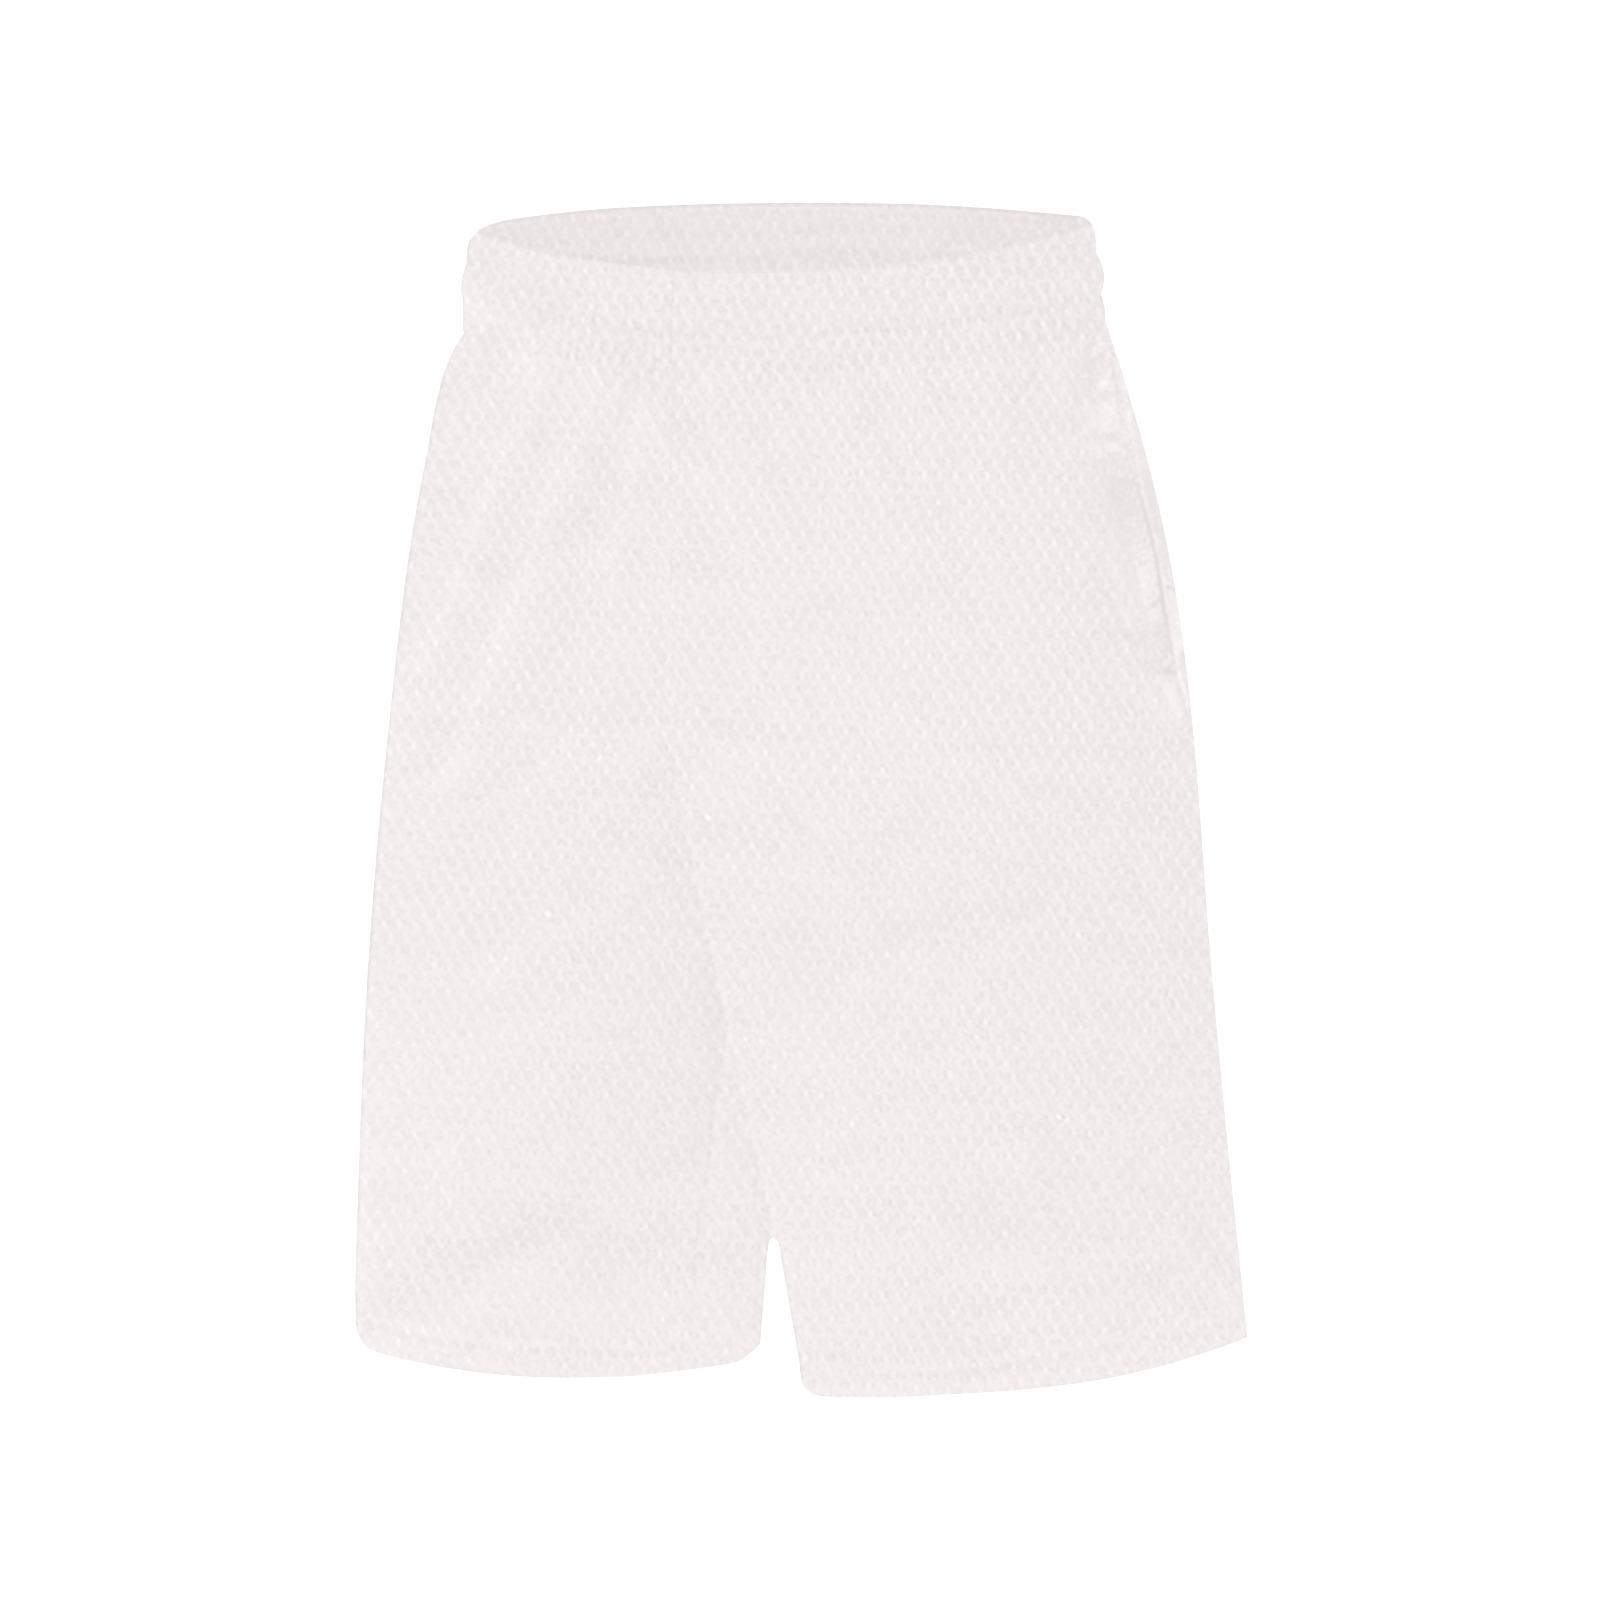 All Over Print Basketball Shorts with Pocket